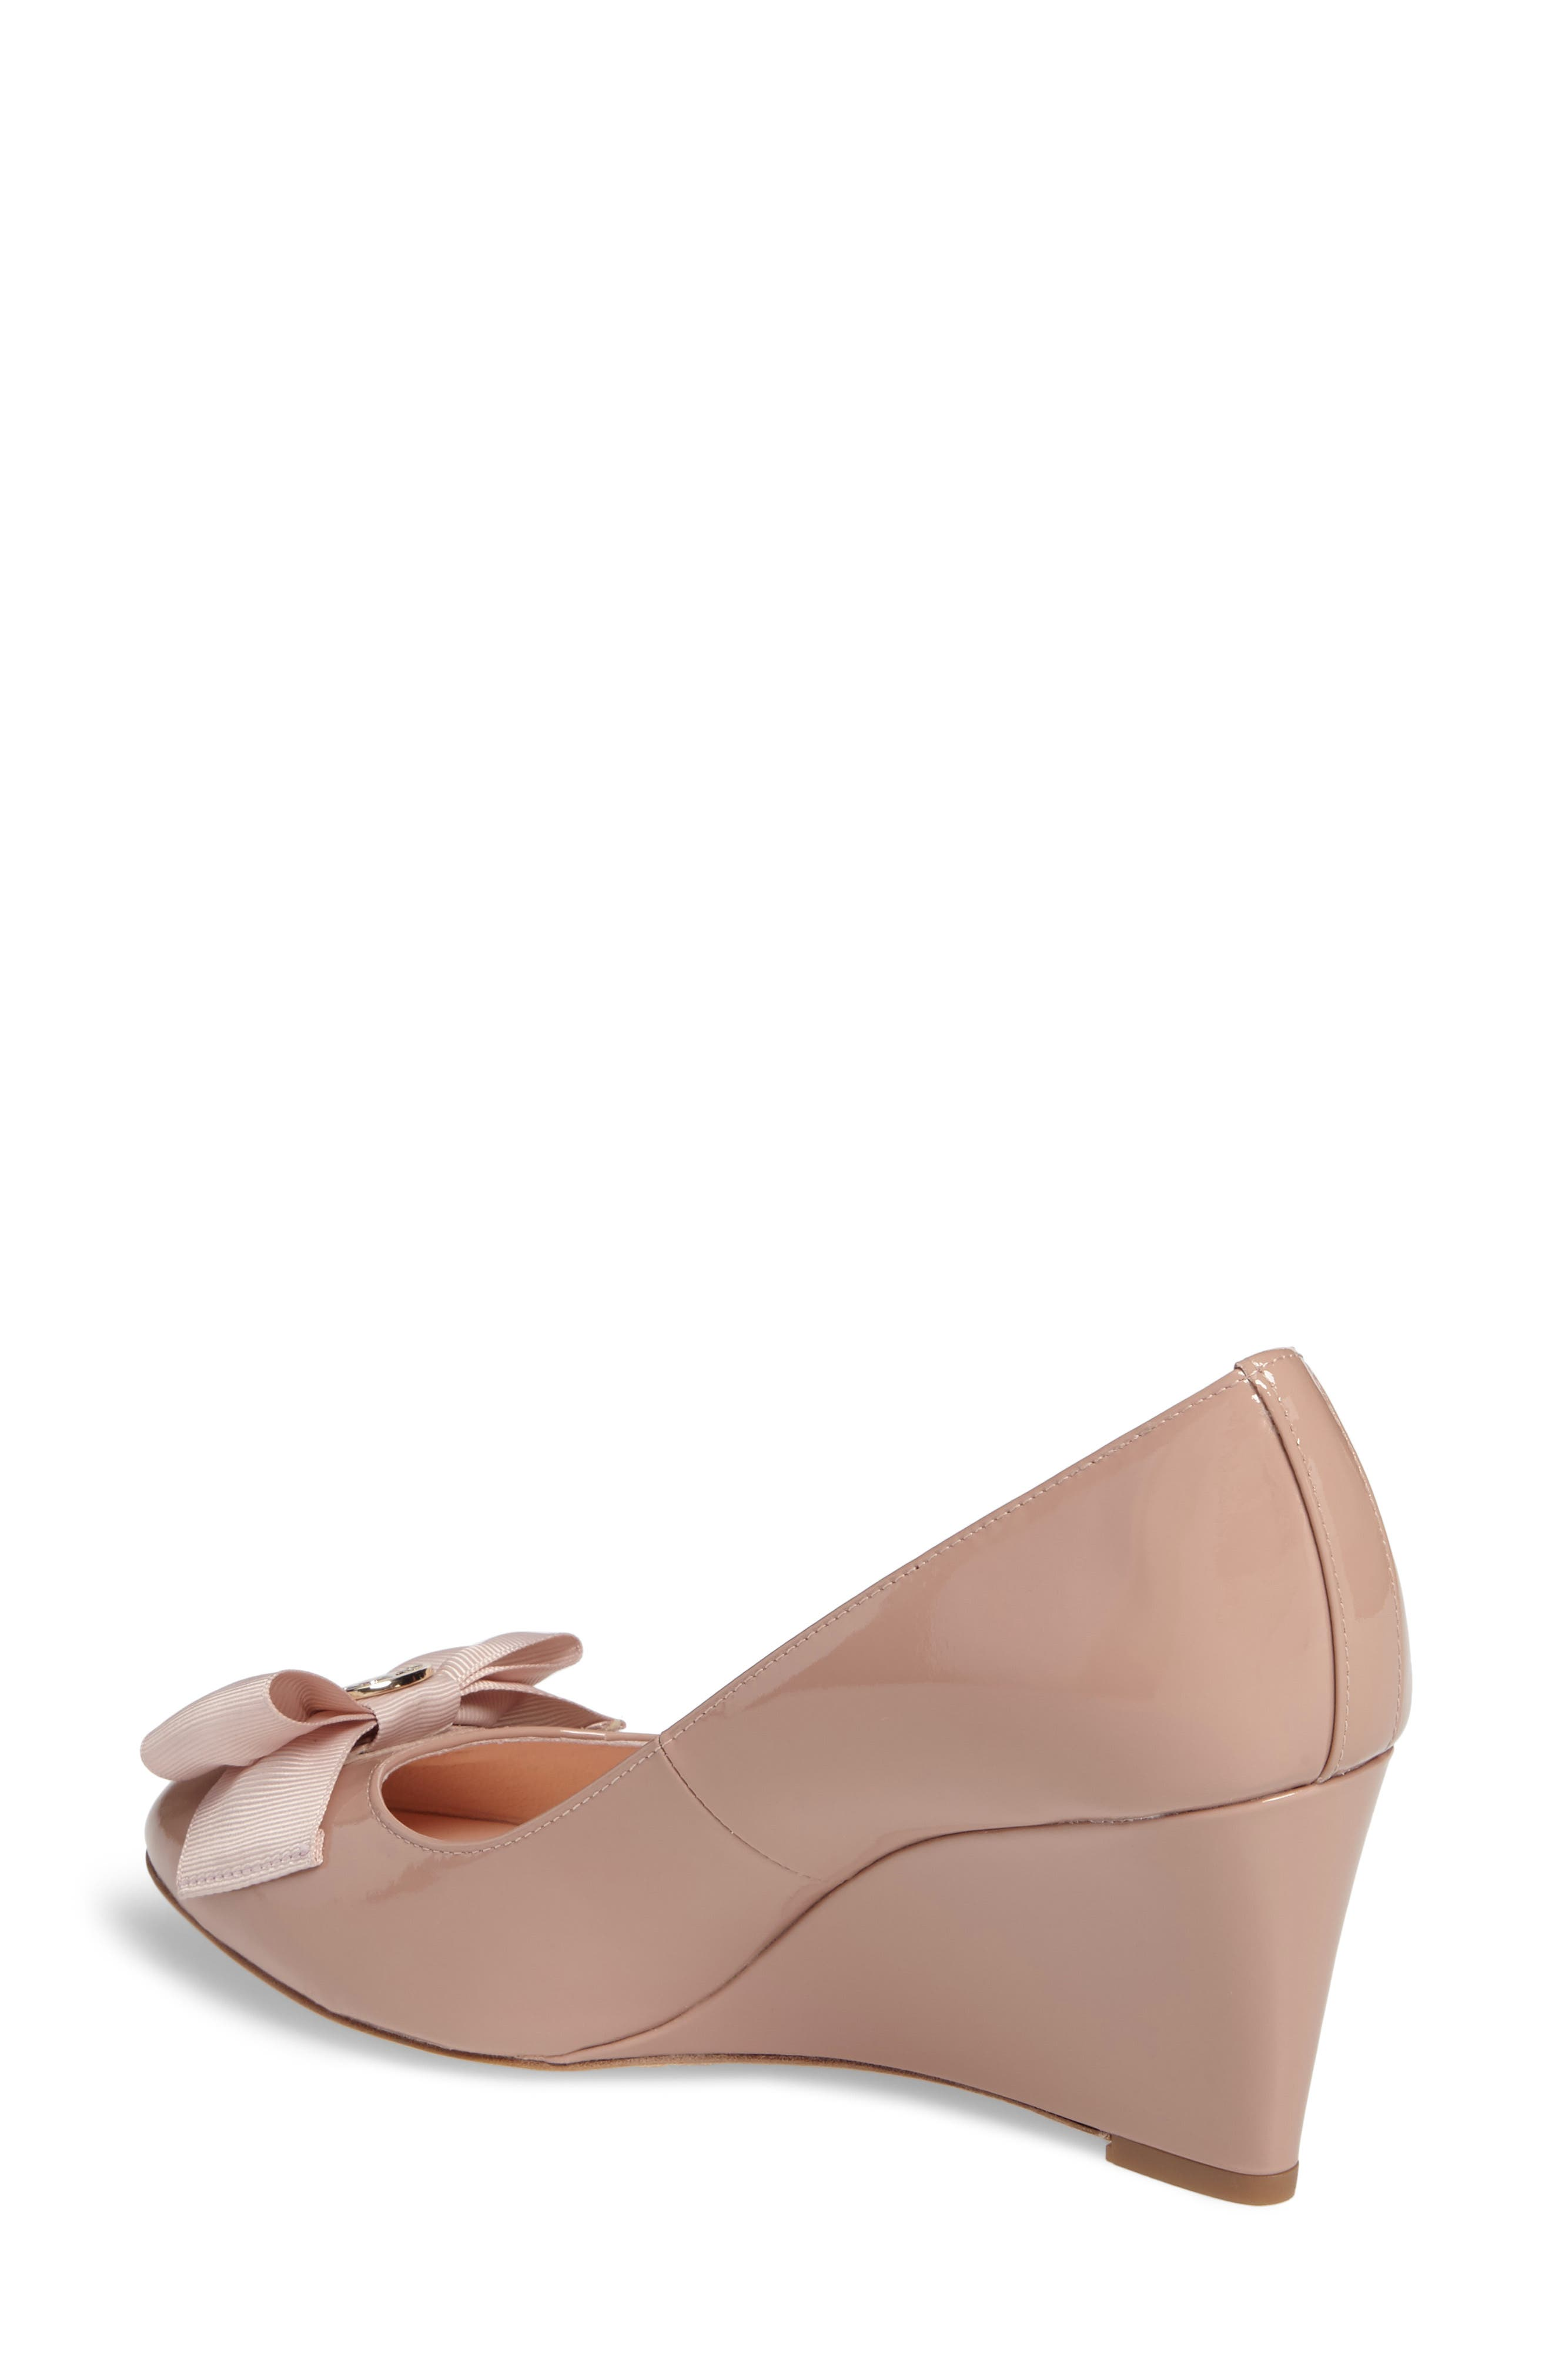 Alternate Image 2  - kate spade new york wescott wedge pump (Women)